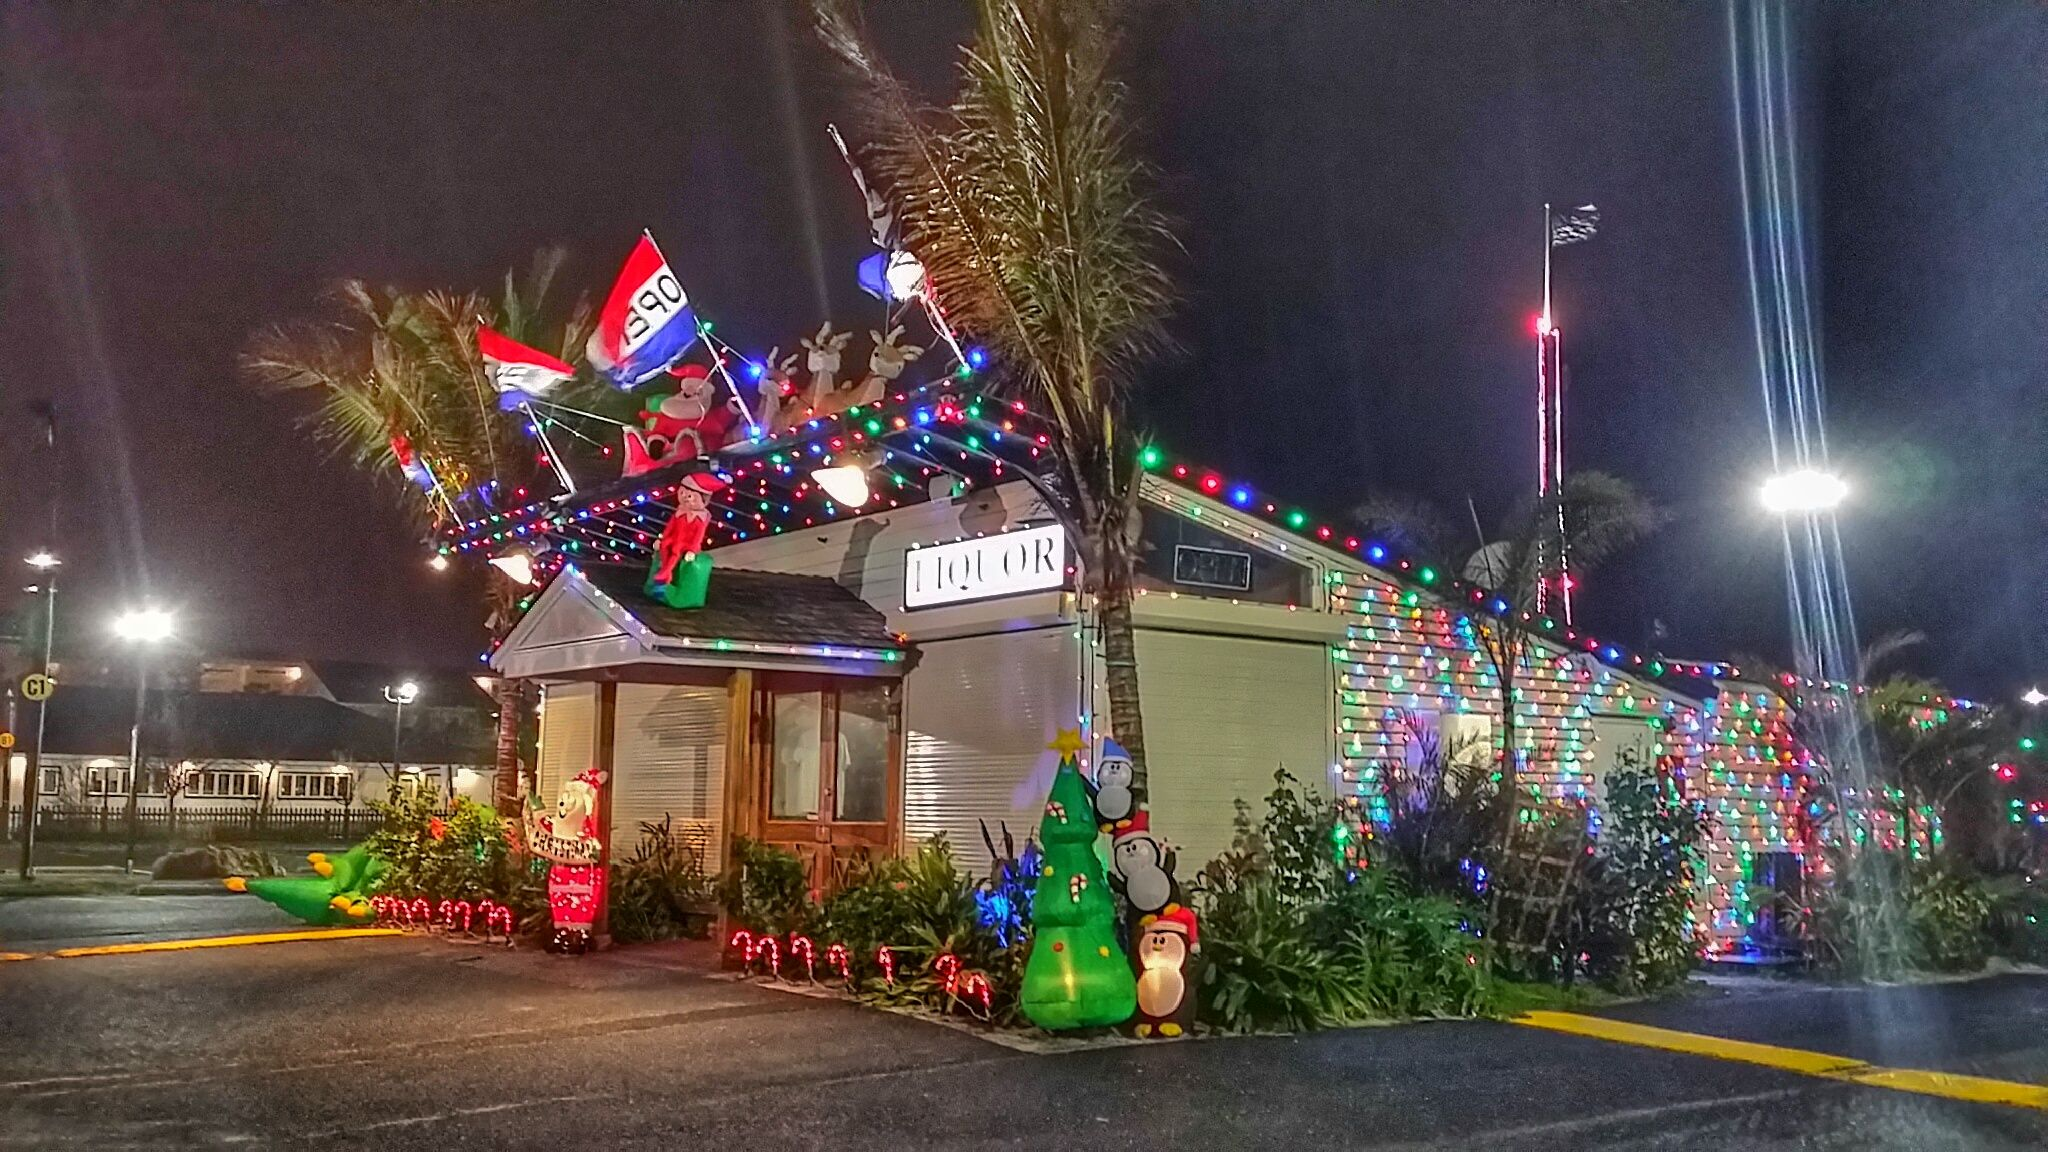 The Seacrets liquor store in Ocean City is ready for the holidays ...